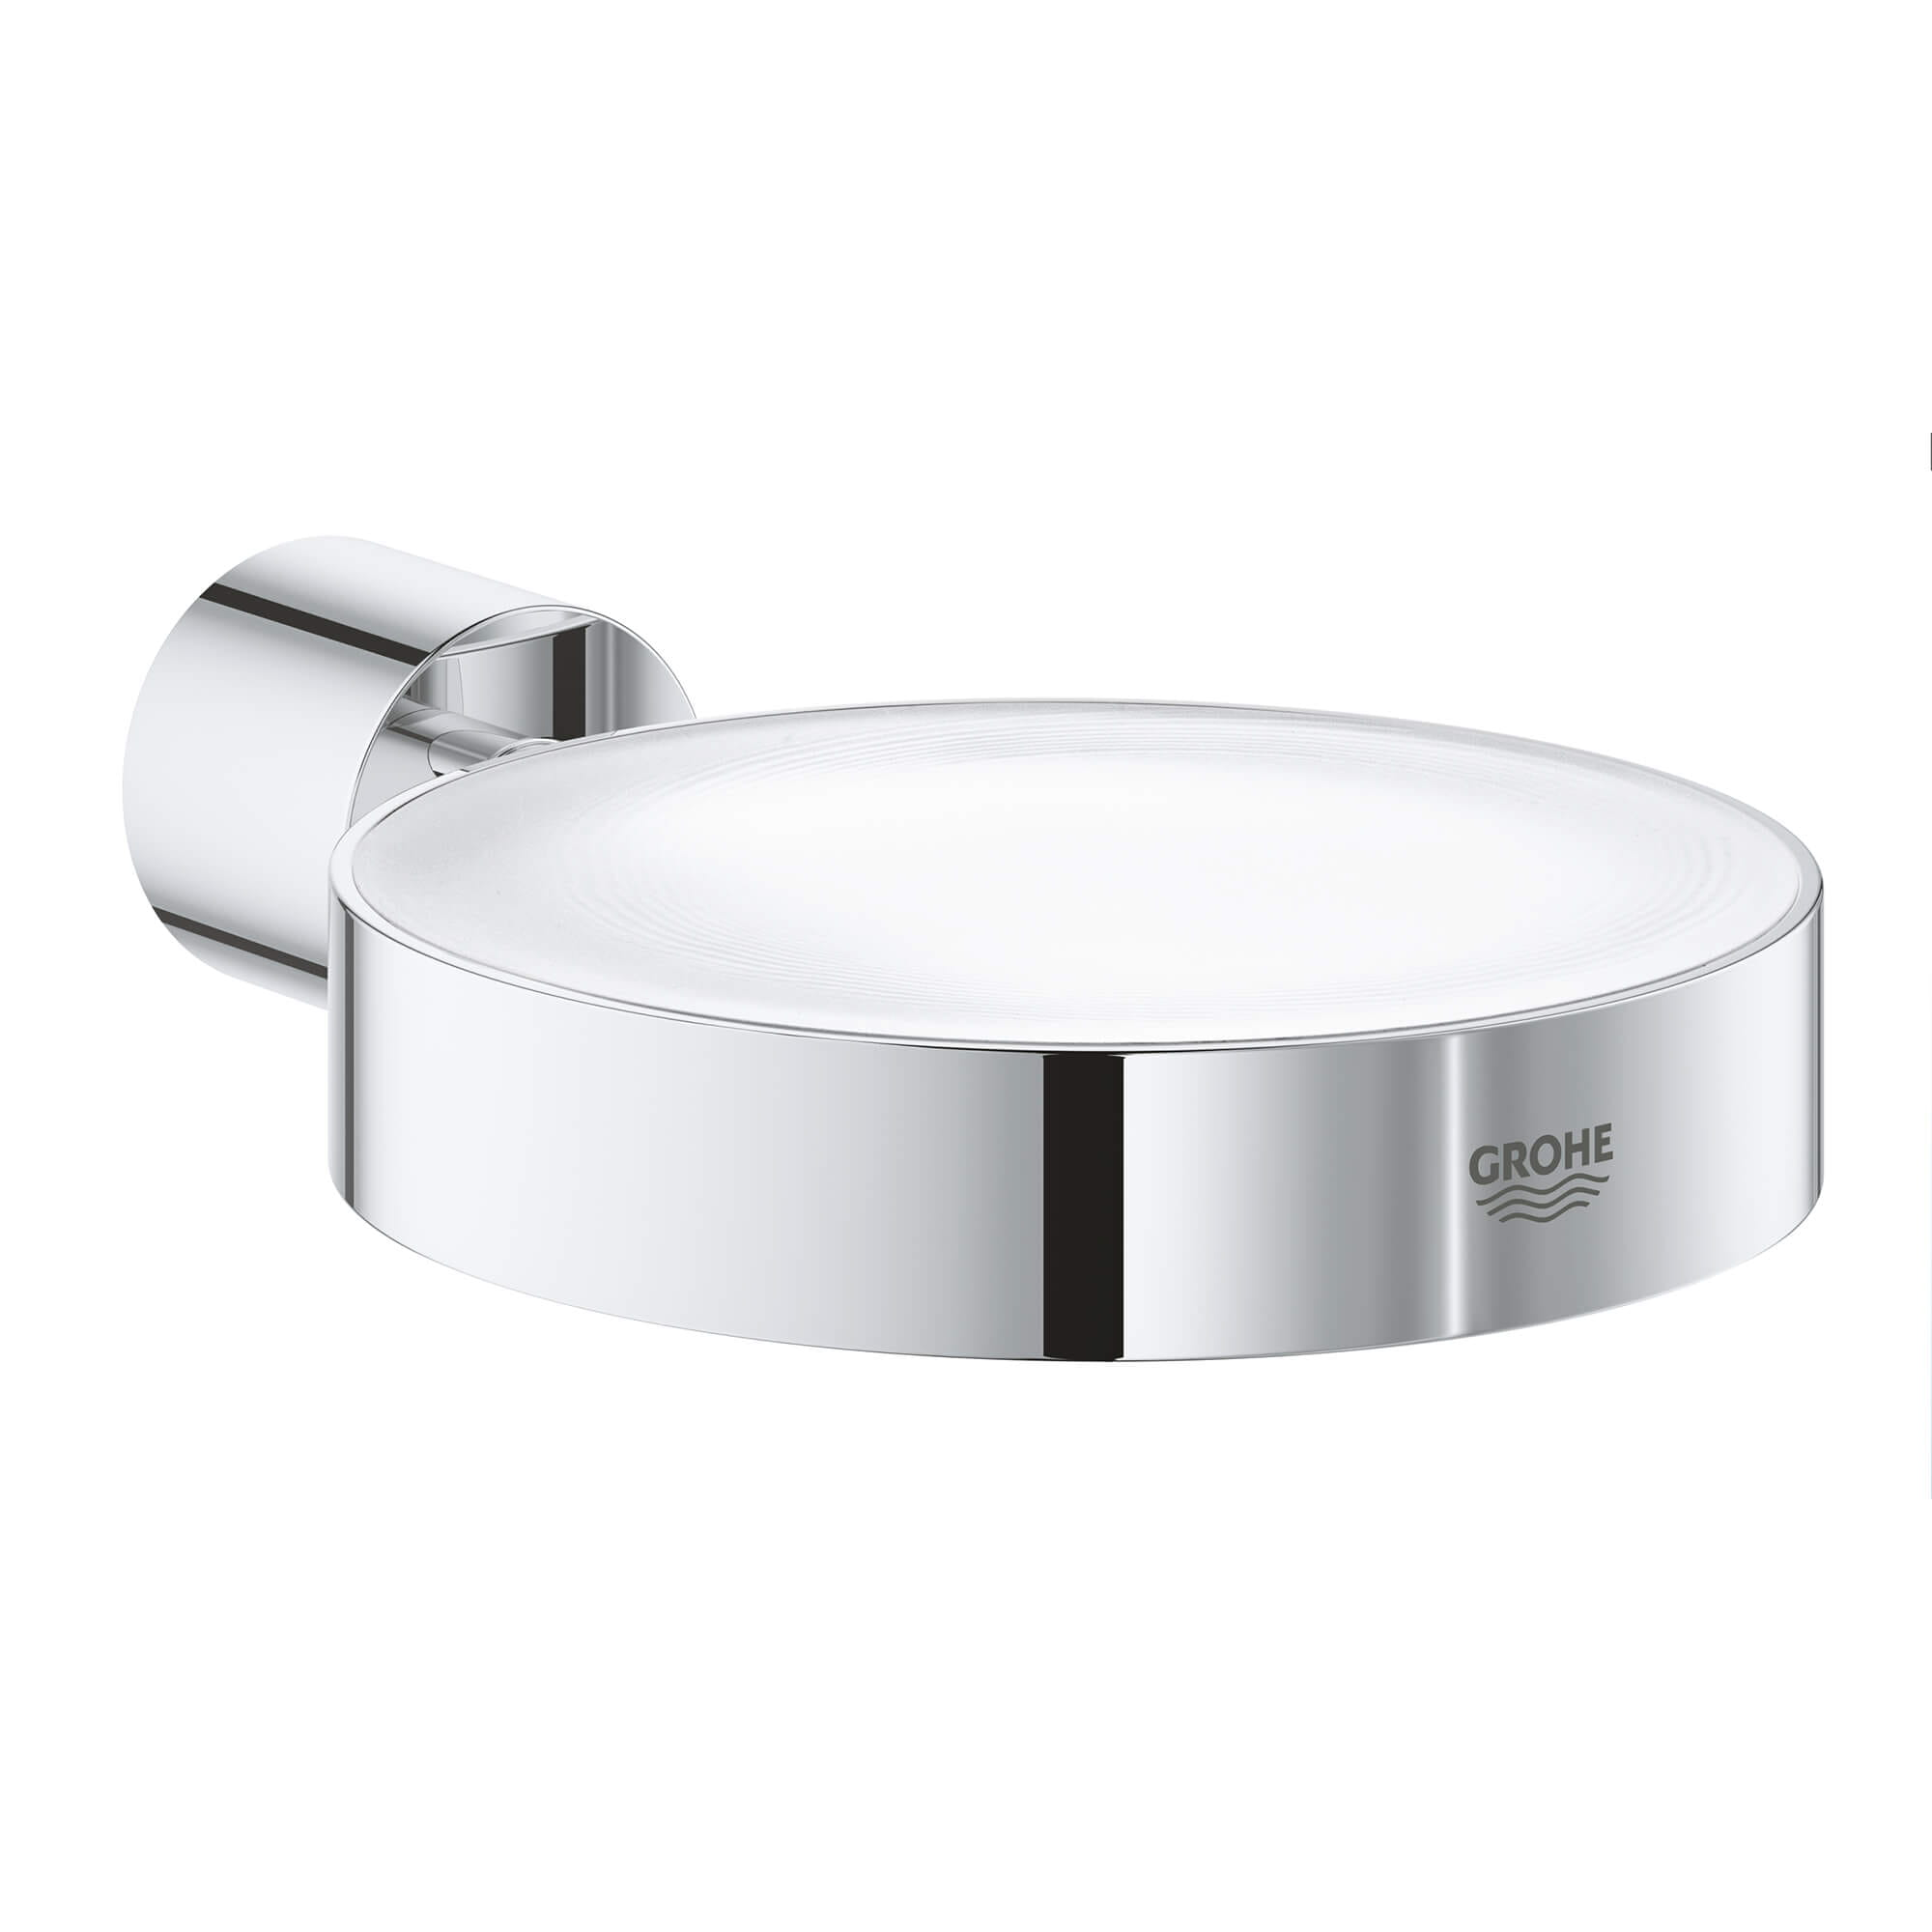 ATRIO Soap Dish GROHE CHROME